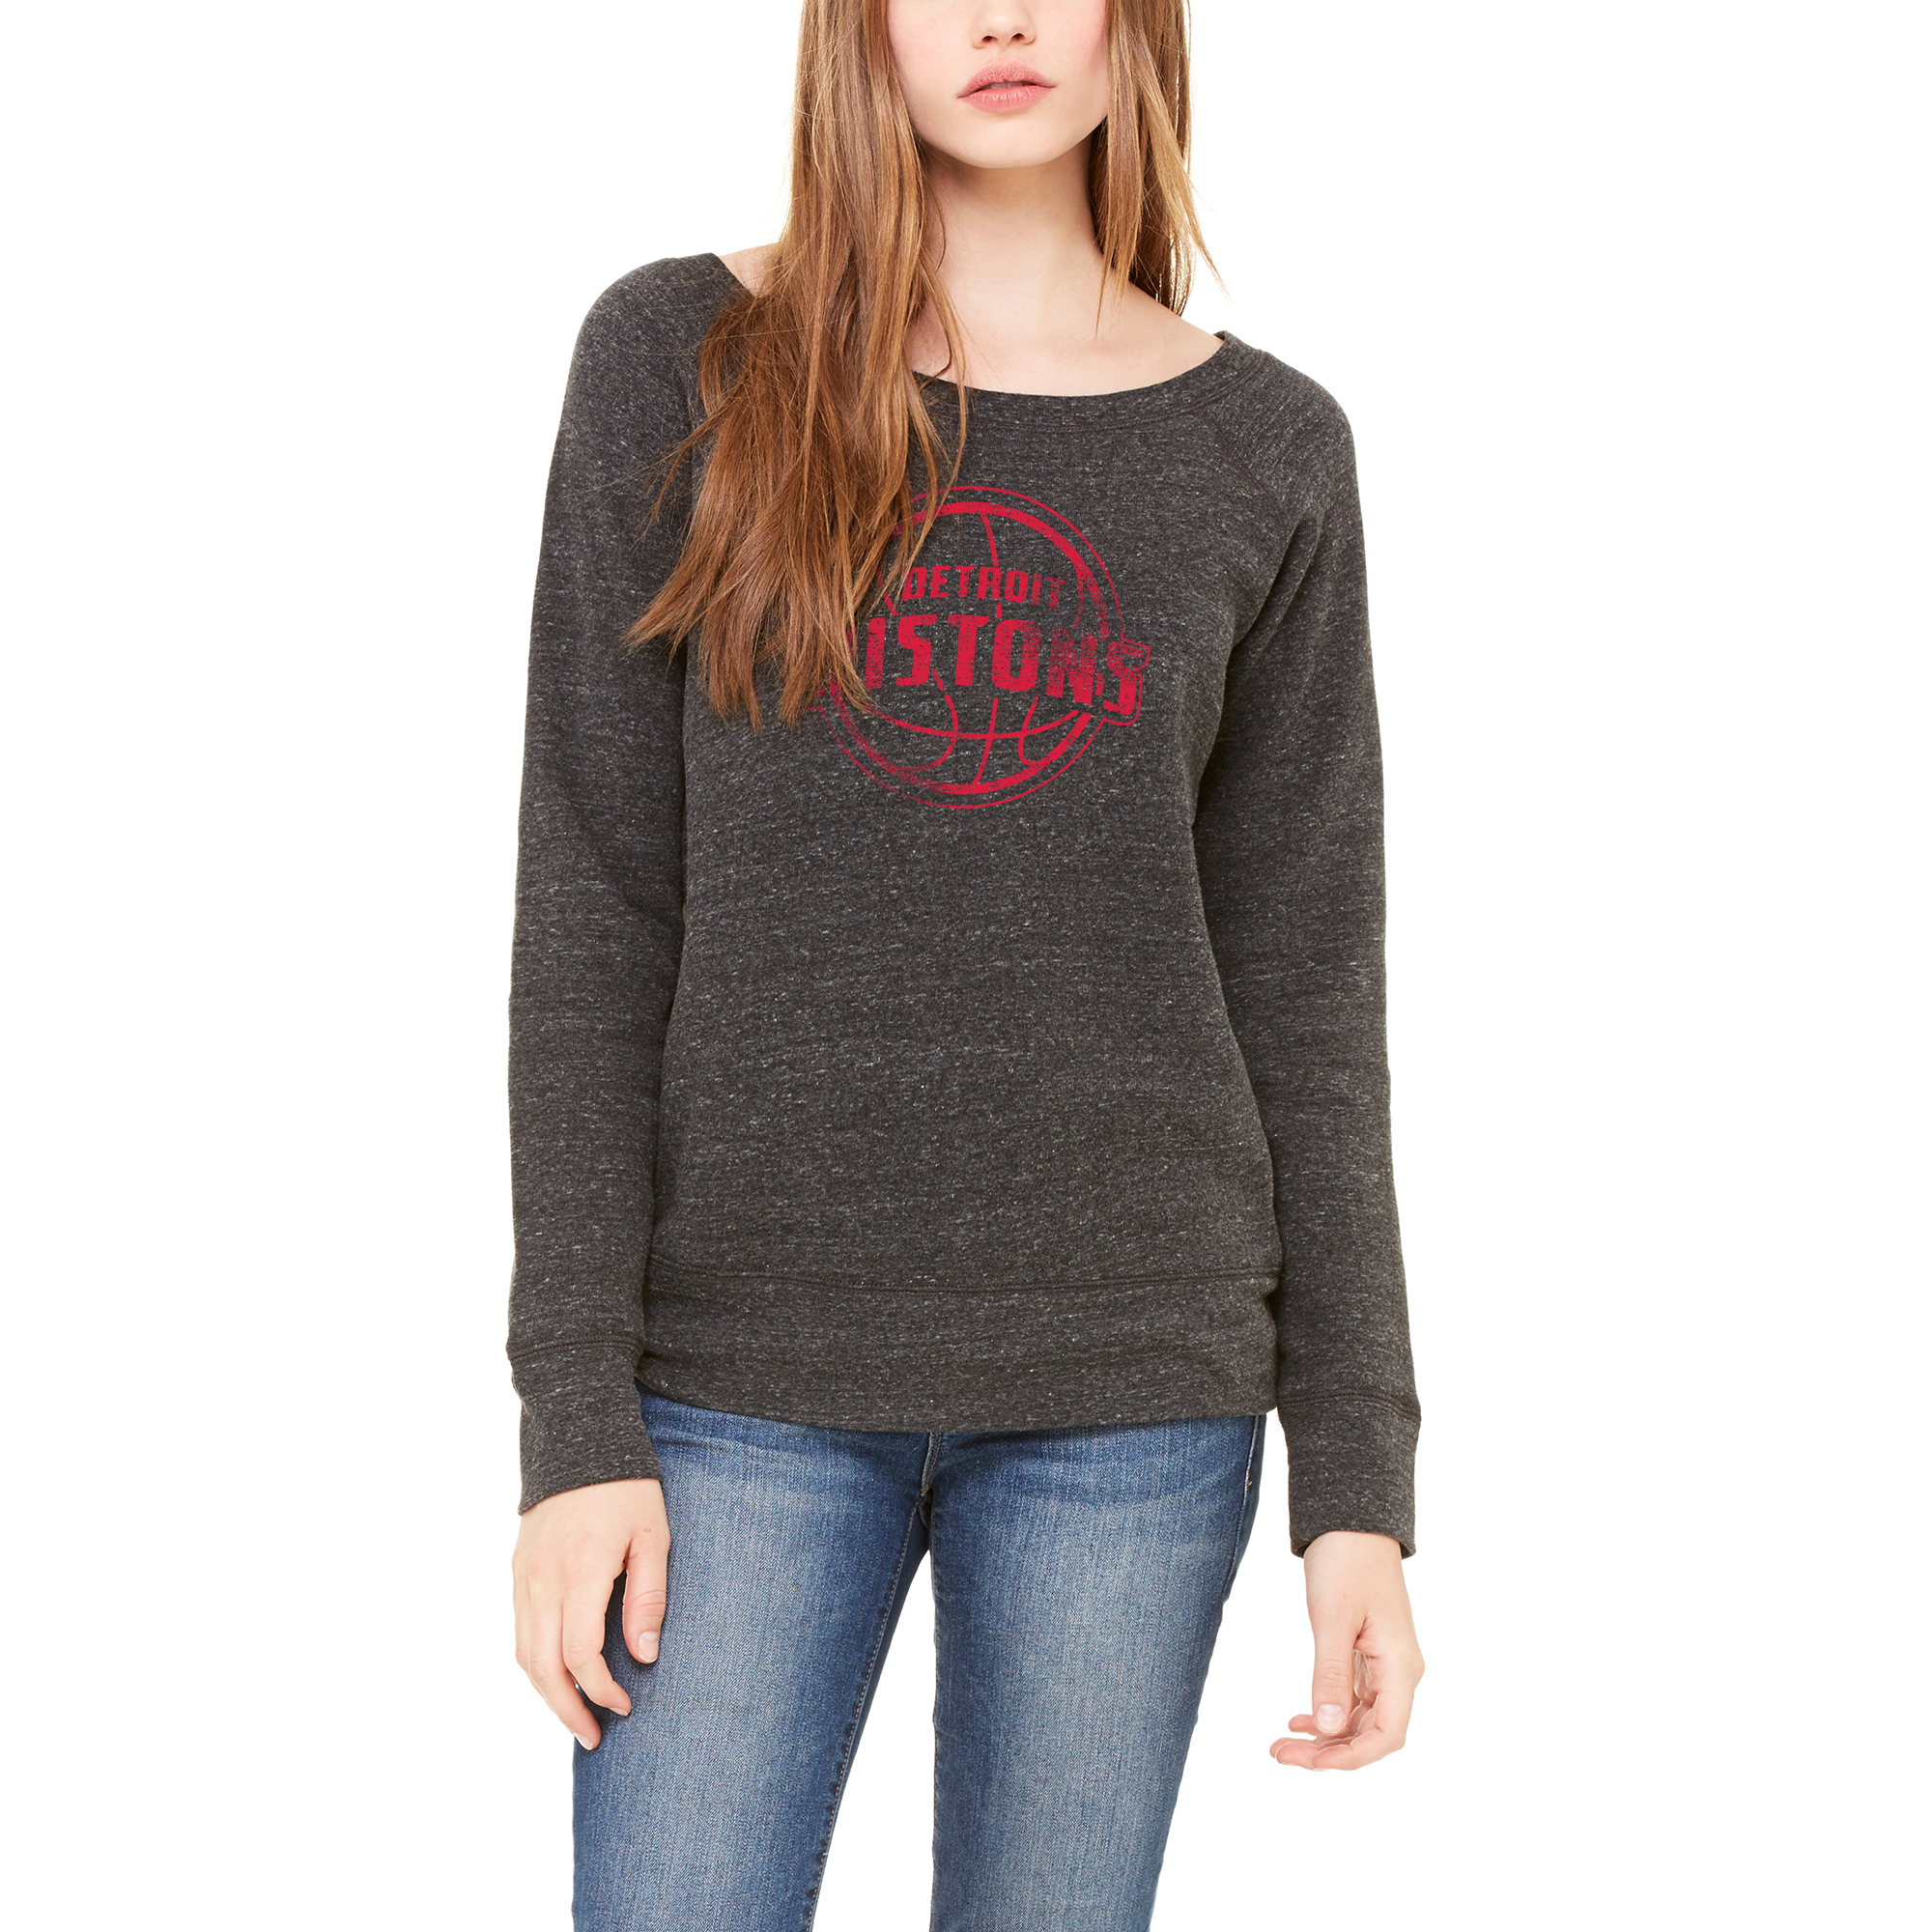 Detroit Pistons Let Loose by RNL Women's Game Day Wide Neck Sweatshirt - Heathered Charcoal